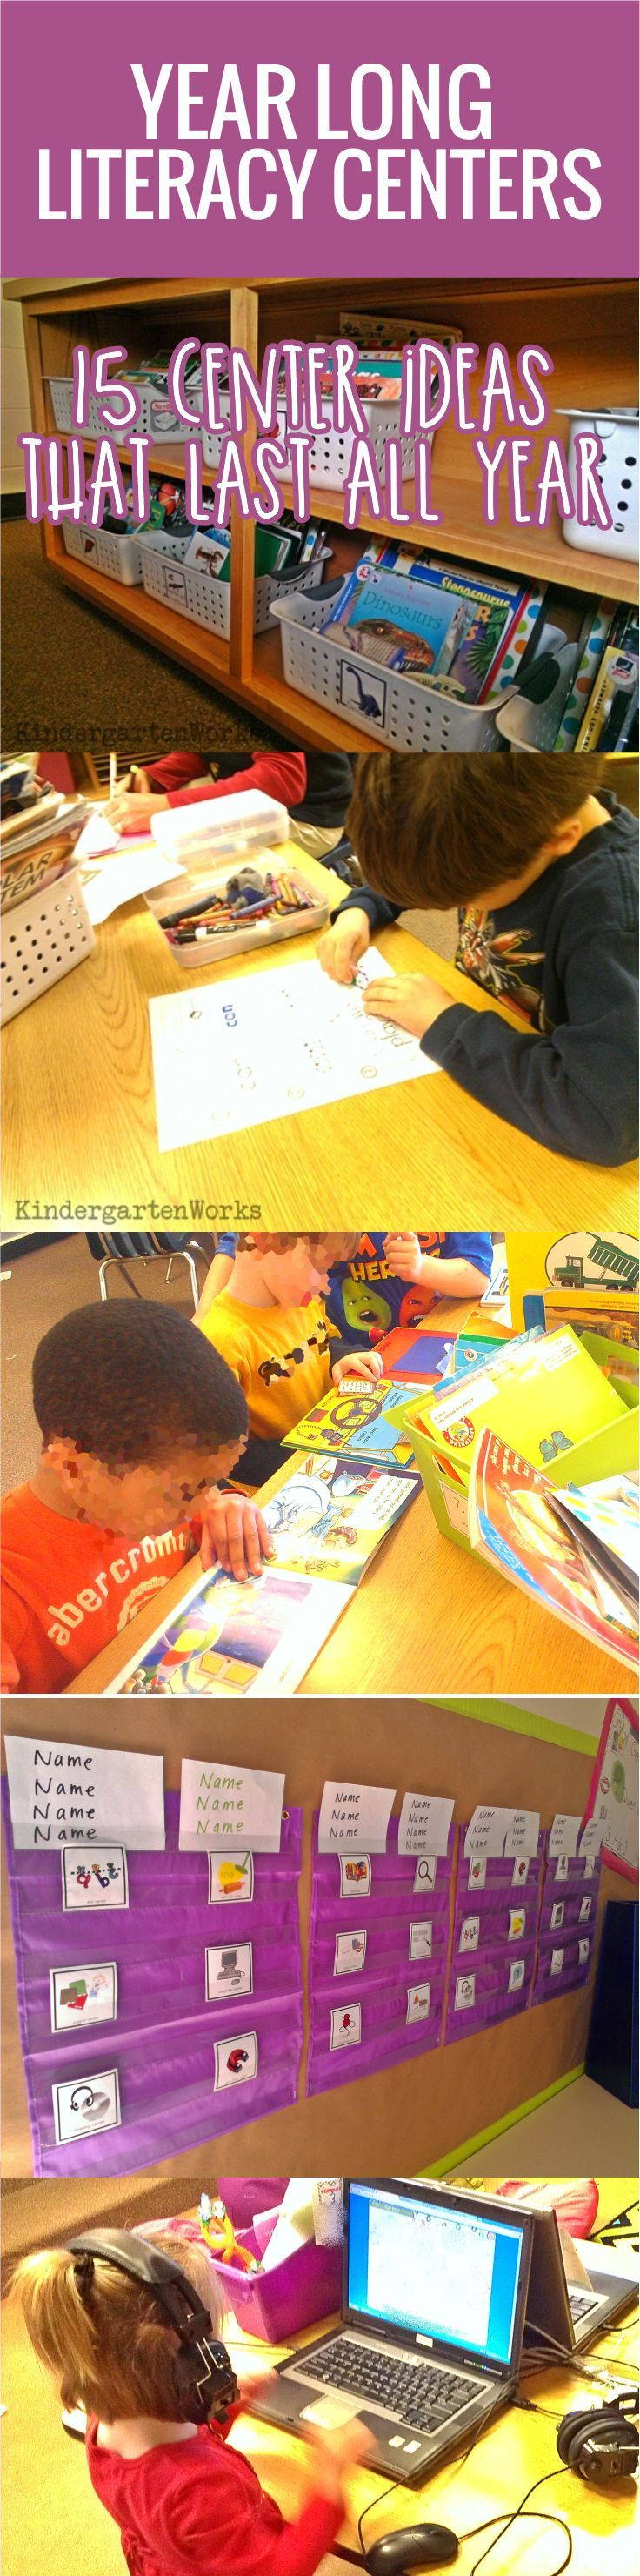 Literacy centers can be a blessing or a pain. I think it all hinges on the design, organization and effectiveness behind them that makes a difference. This is my philosophy on how to create literacy centers that are smart for me, the teacher, and effective for my kindergarten students